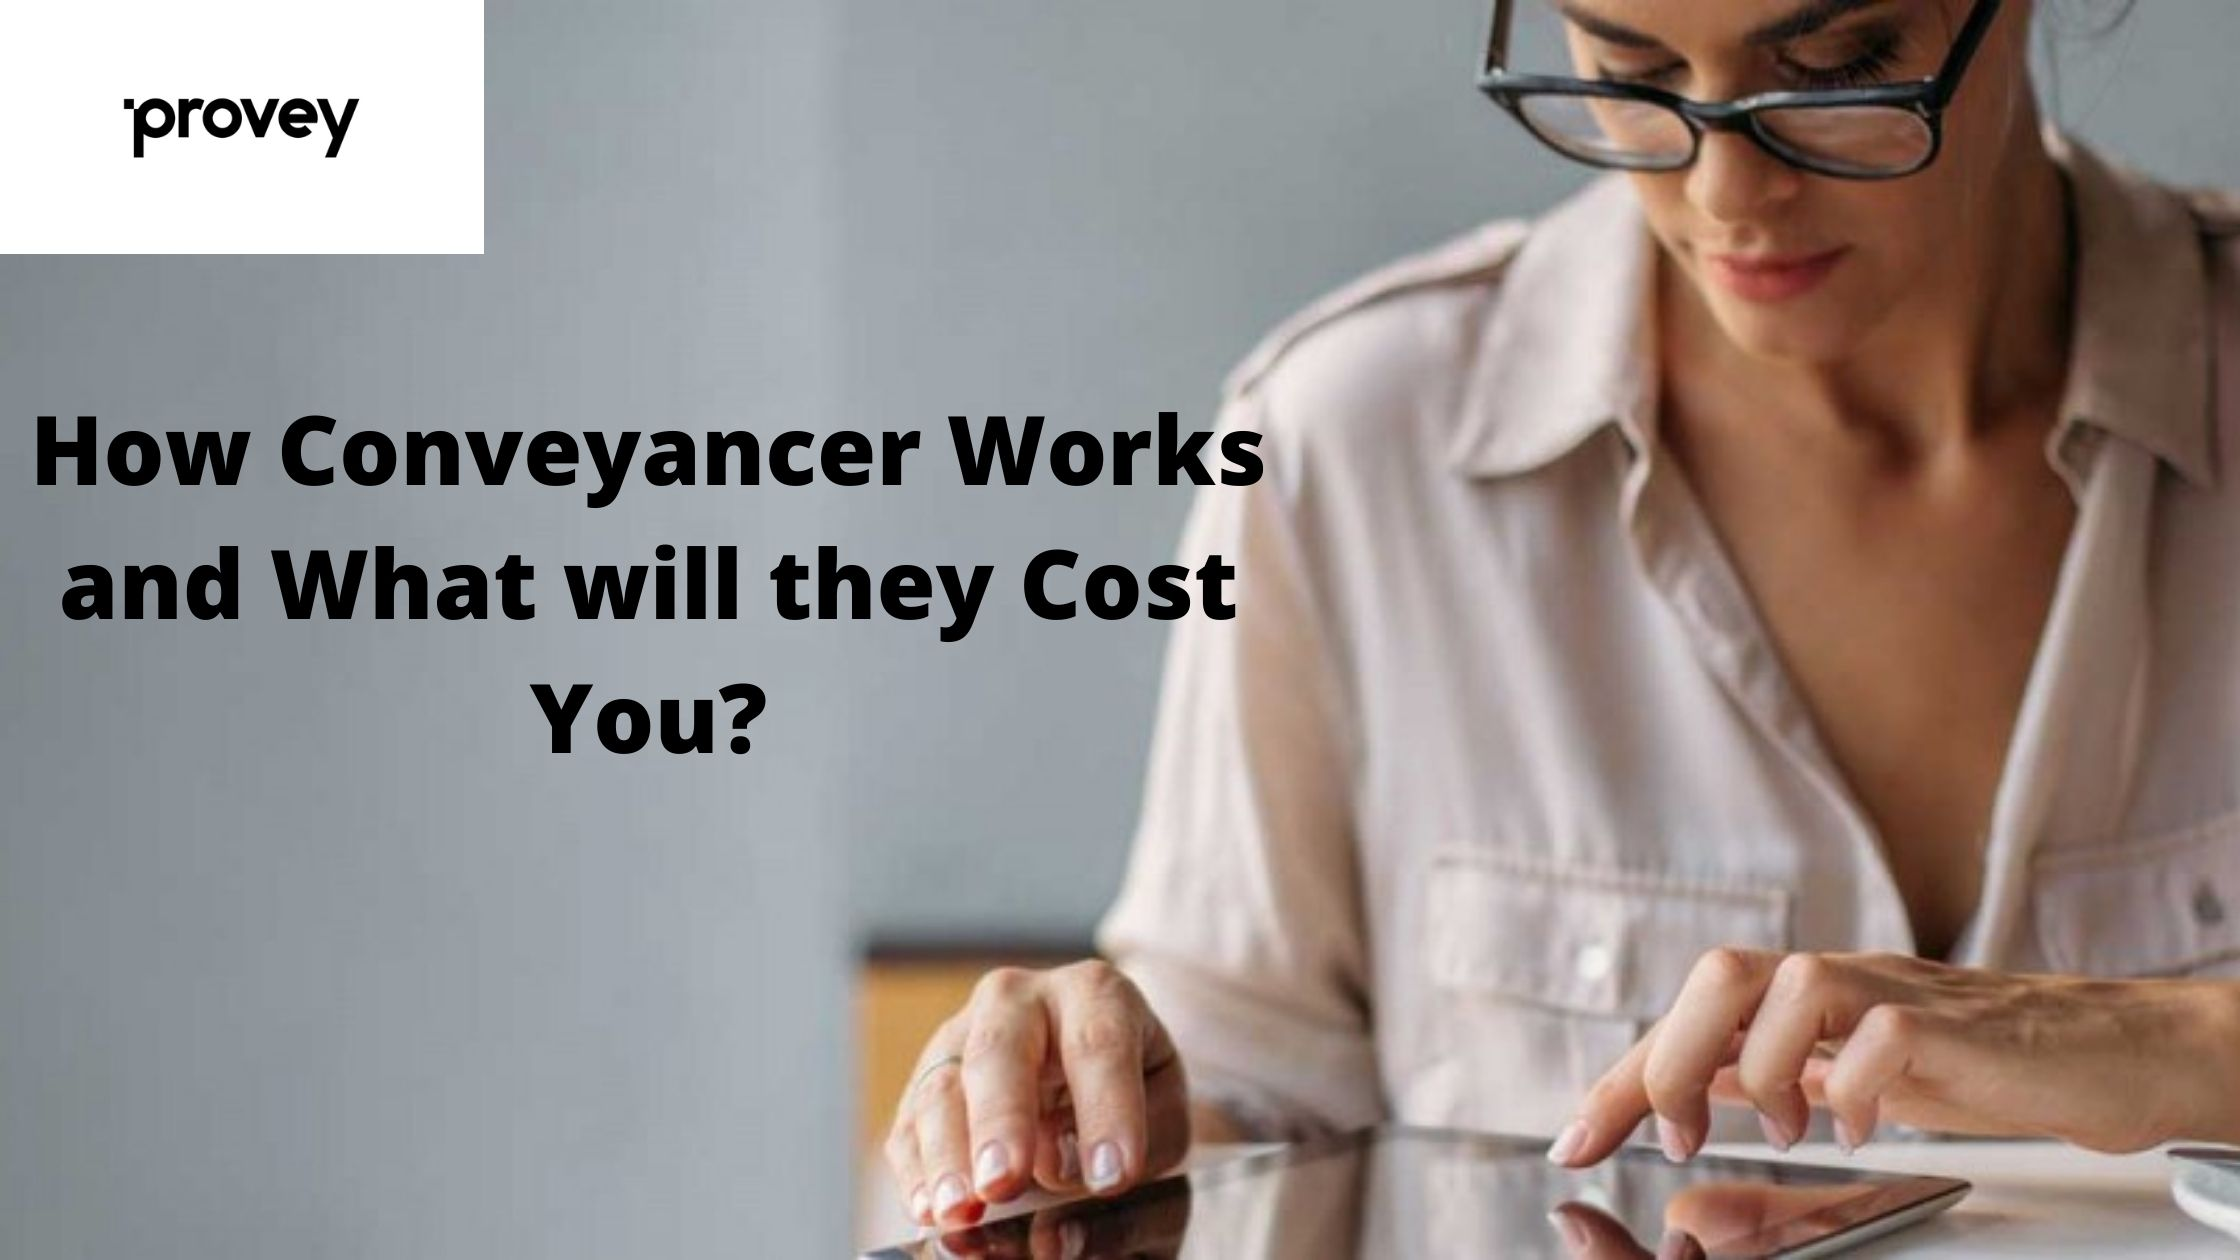 property conveyancing melbourne, How Conveyancer Works and What will they Cost You?